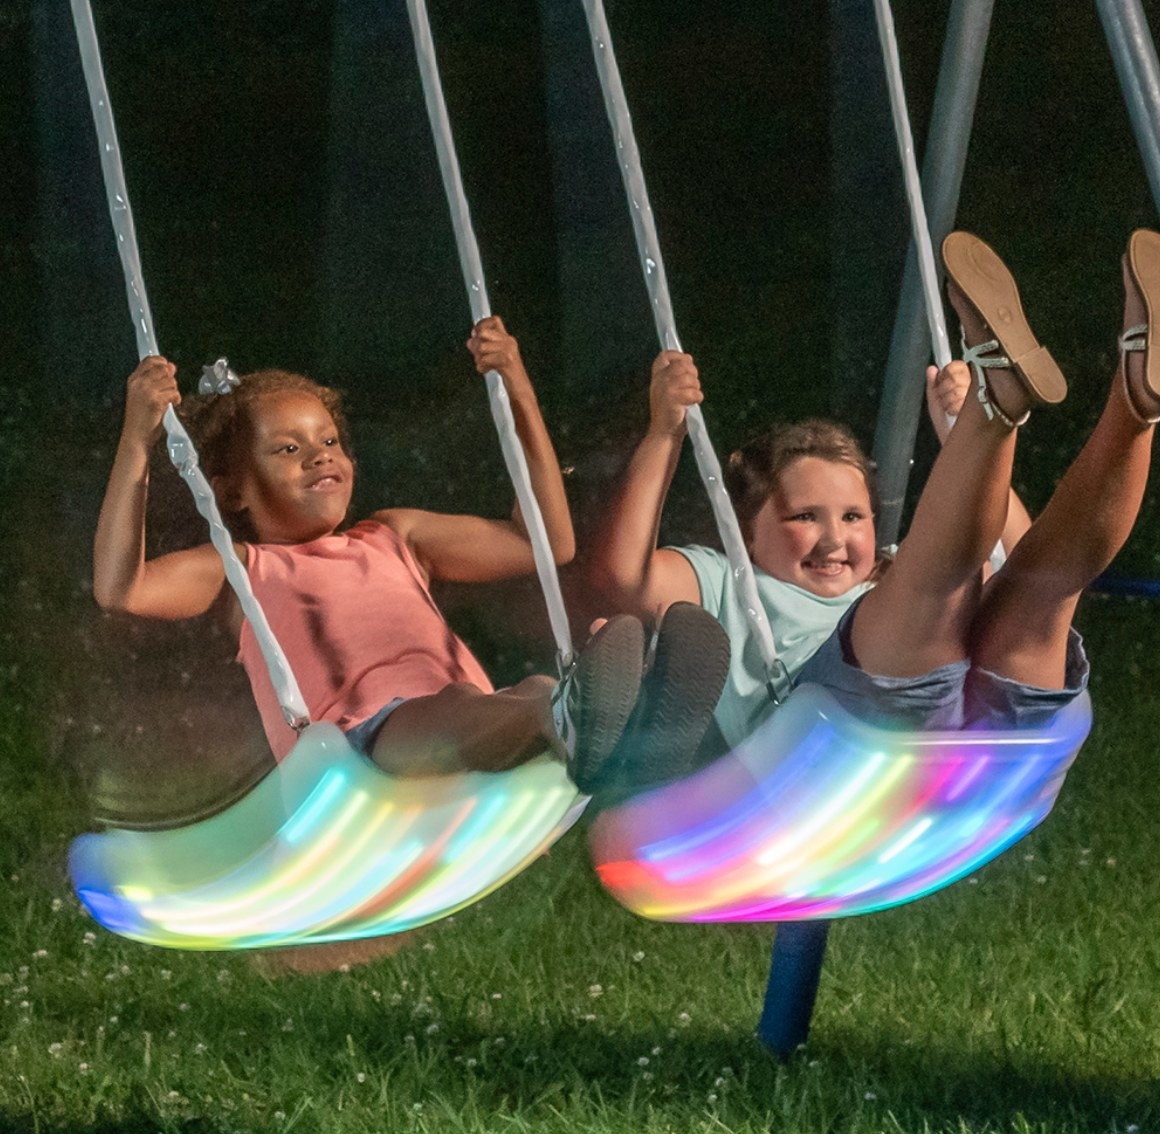 The metal swing set with LED lights